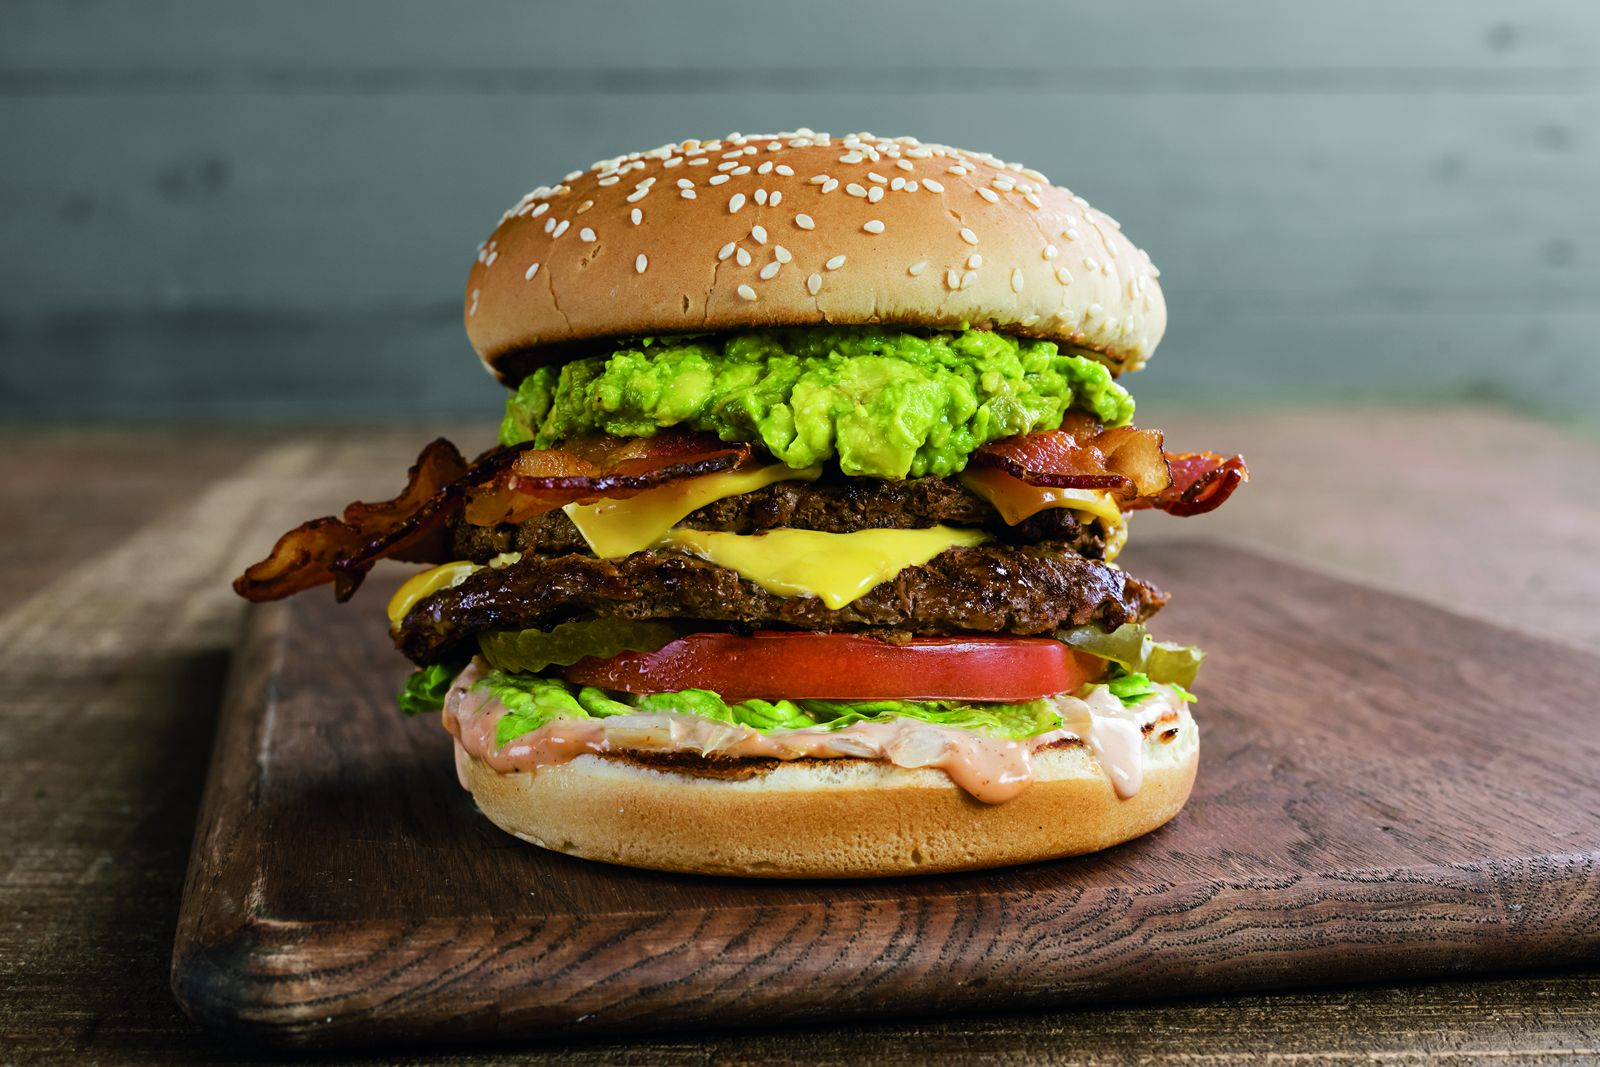 Farmer Boys, the farm-fresh fast casual burger concept with 84 locations throughout California, is holding its 18th annual fundraiser for Loma Linda University Children's Hospital at participating California locations through October 8, 2018.